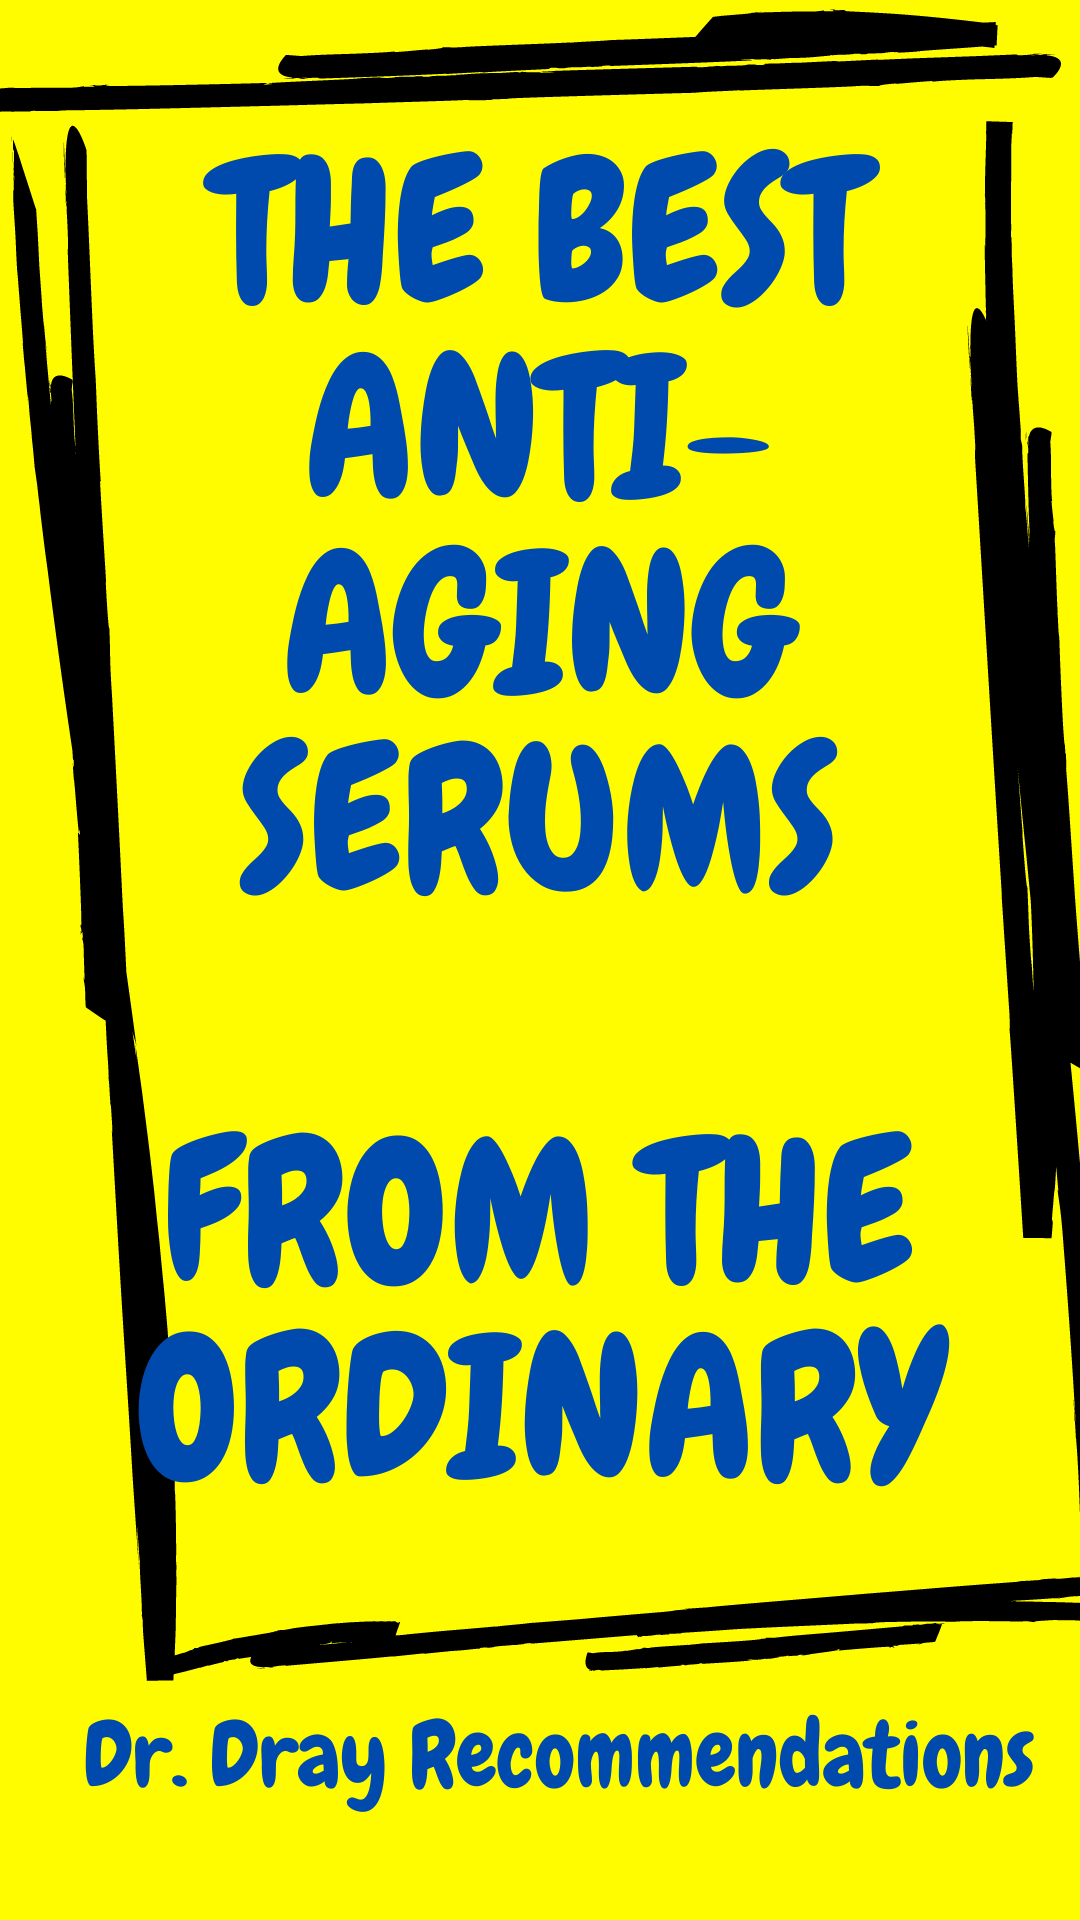 DR. DRAY RECOMMENDATIONS - BEST ANTI-AGING SERUMS